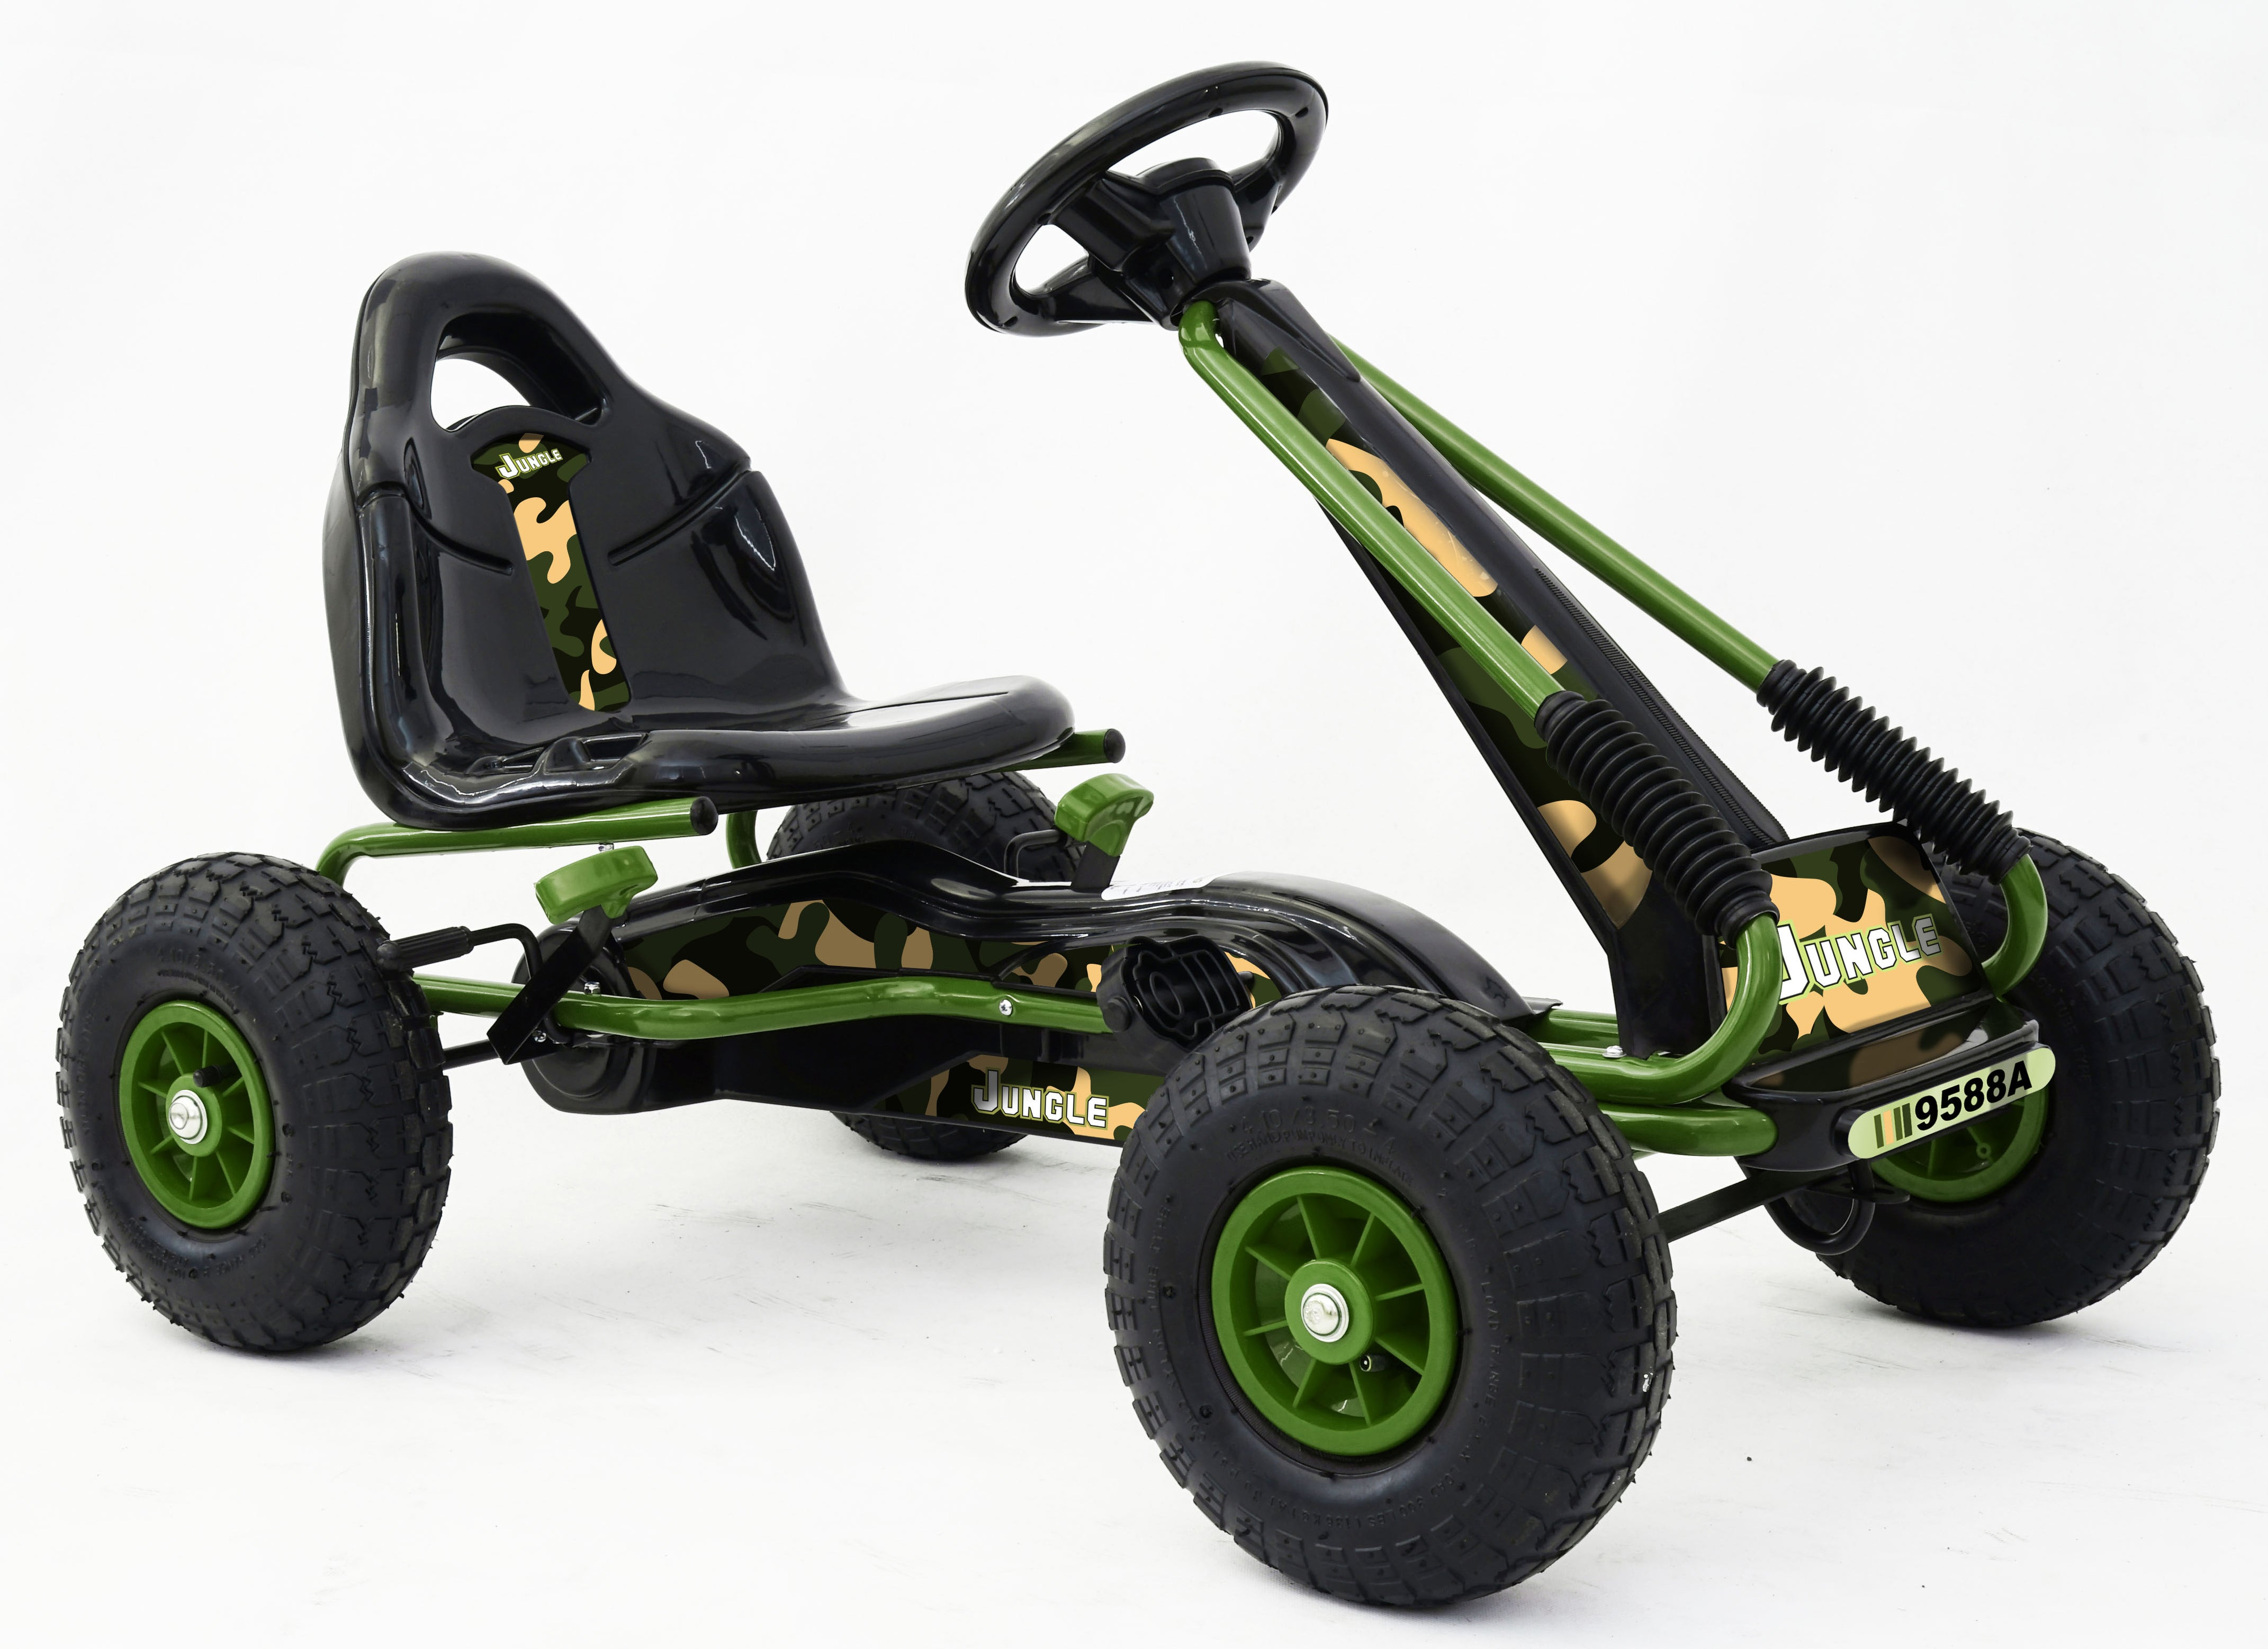 RICCO 9588A CAMOUFLAGE Toys Kids Pedal Go Kart Ride On Air Wheels ...